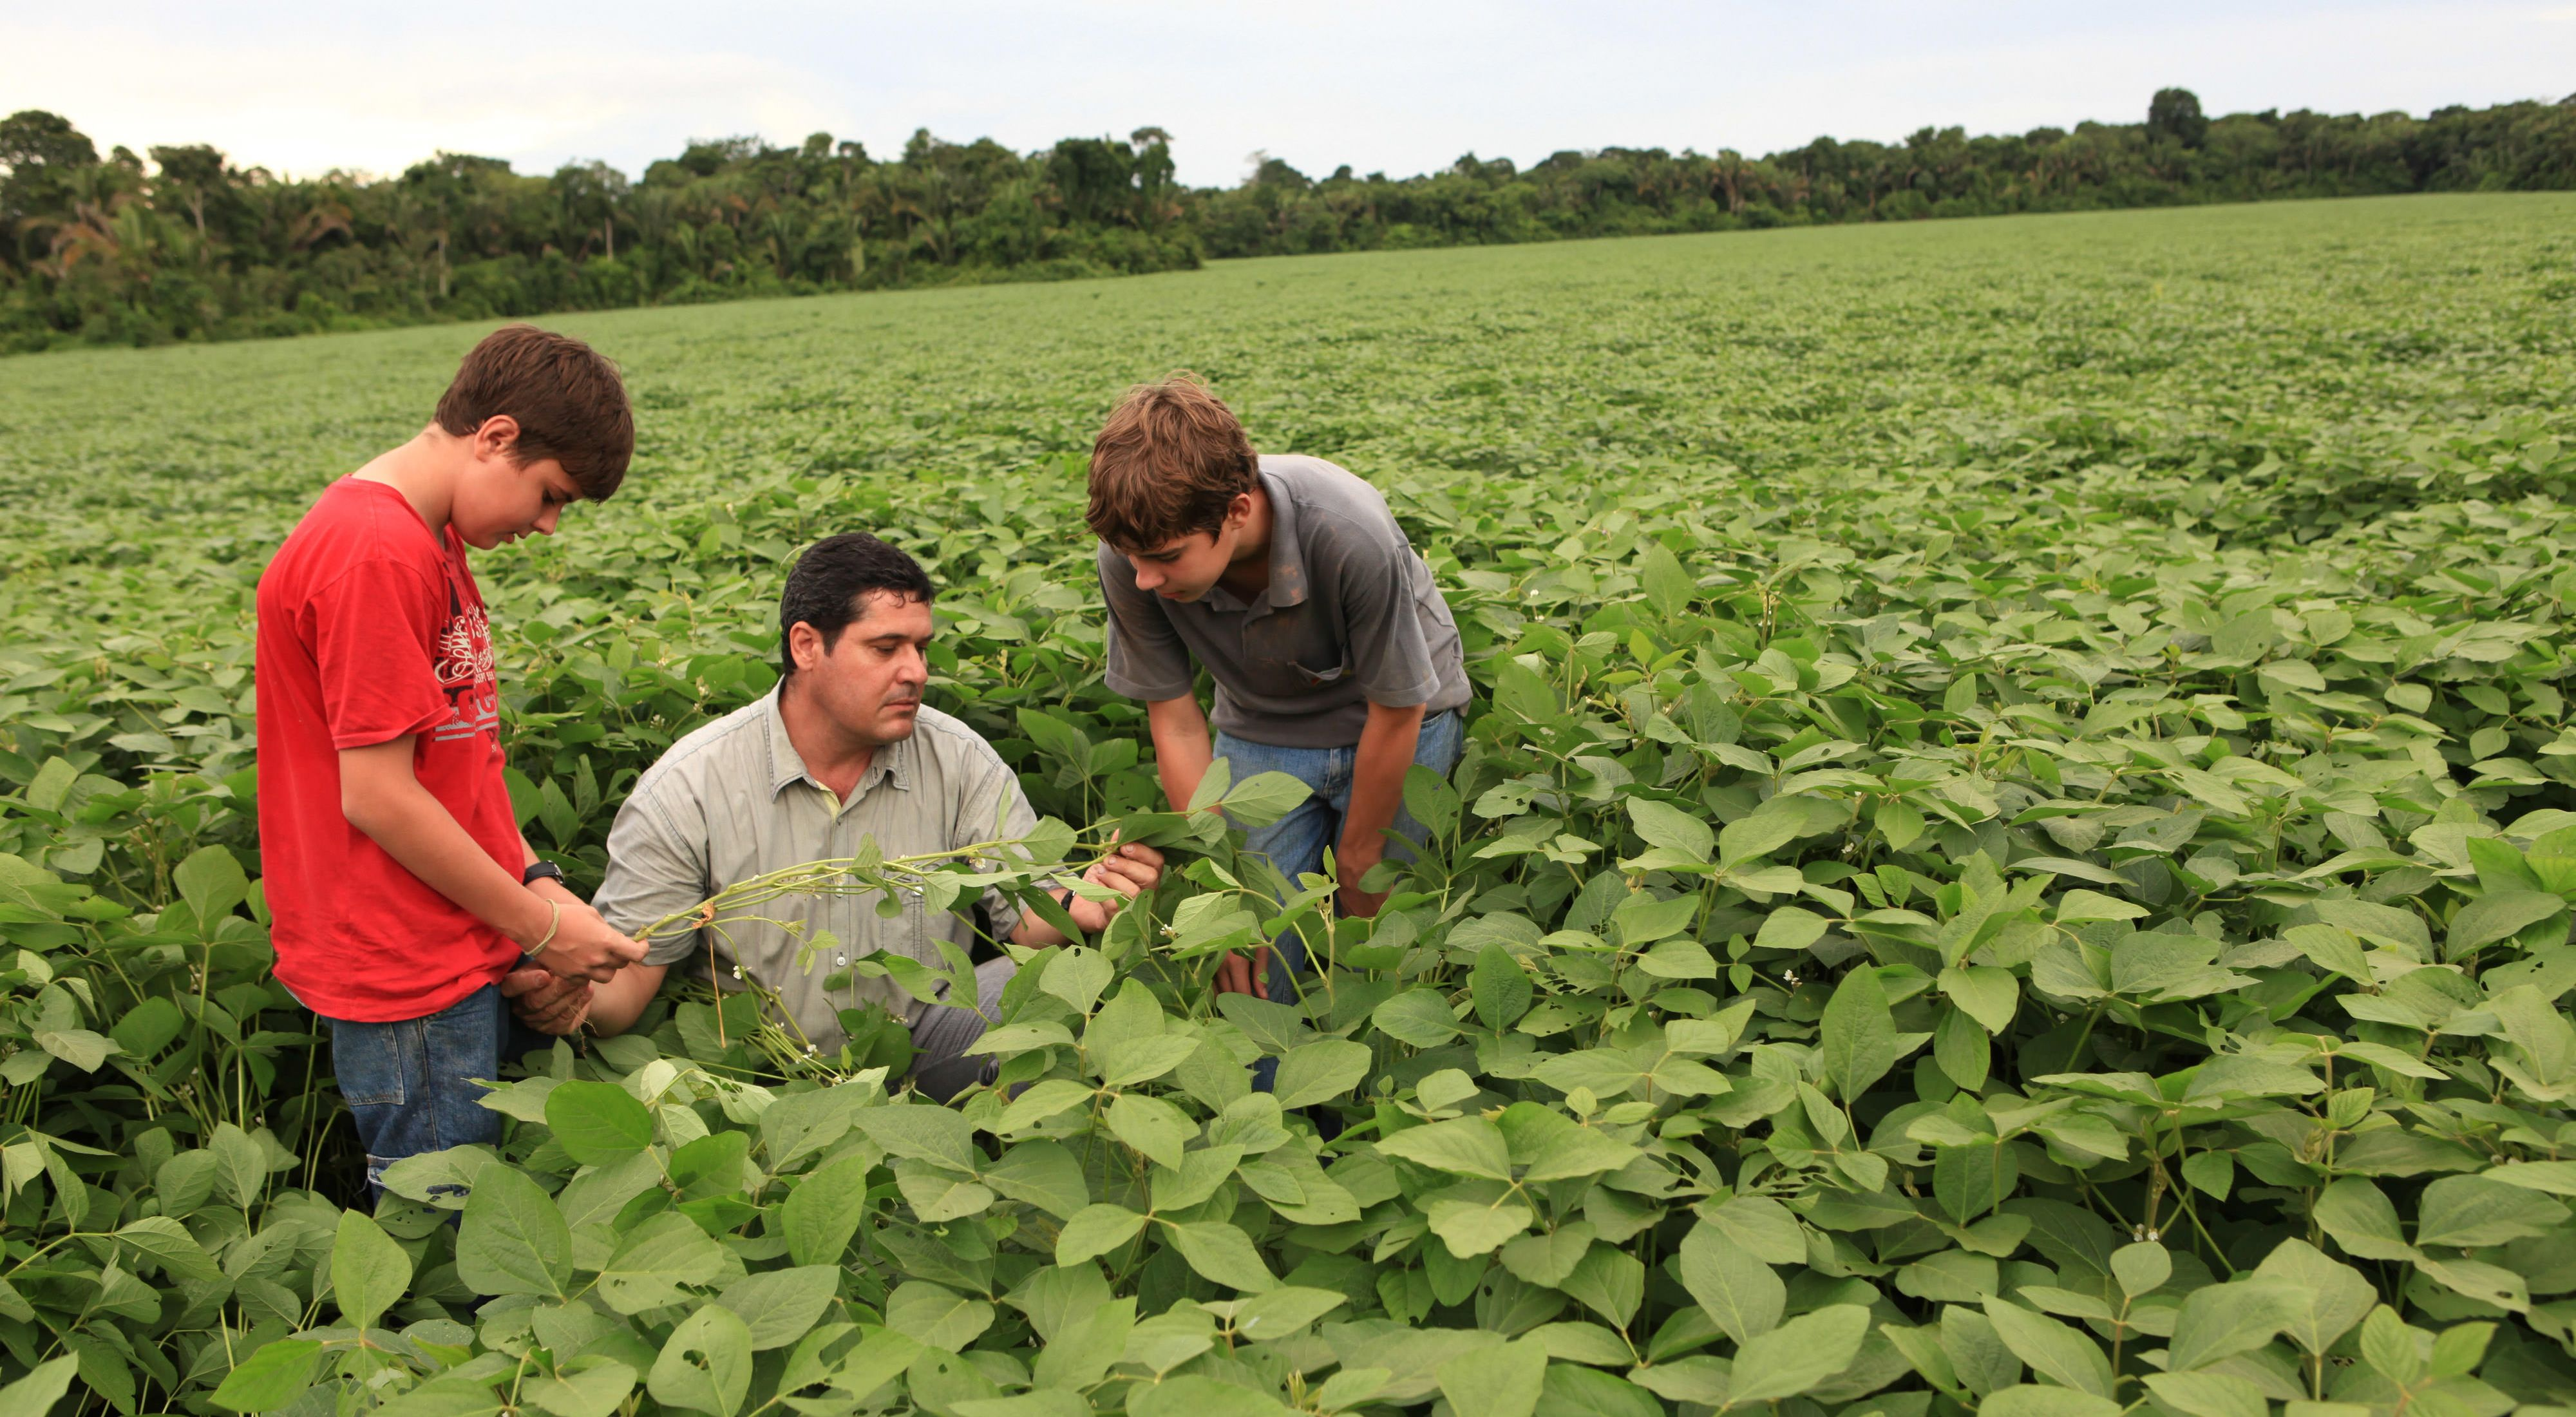 A man and two boys in a field look at their crop.